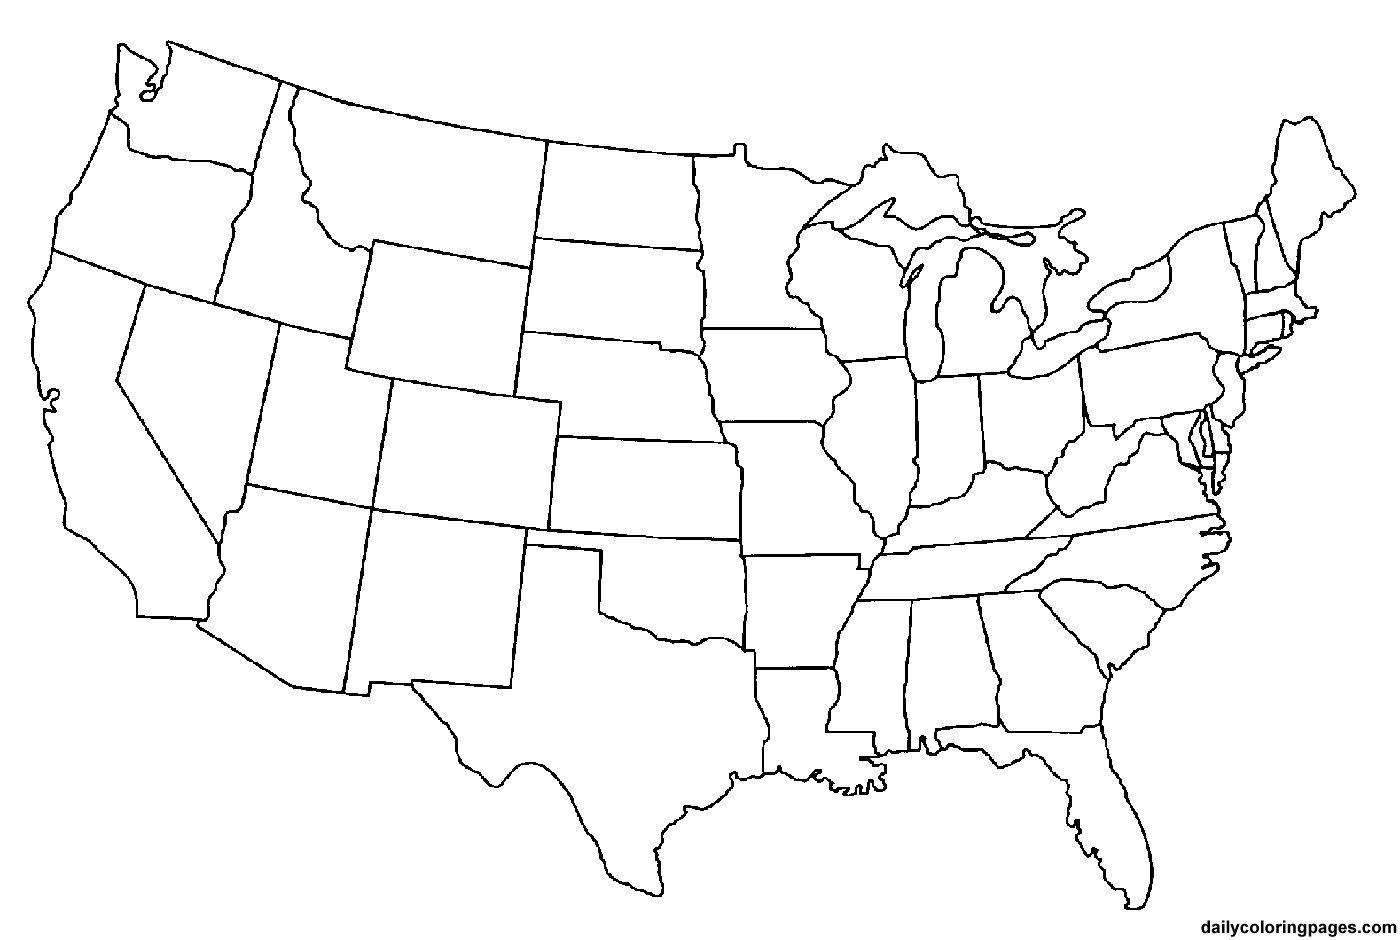 usa coloring pages united states map usa coloring page usa state map united usa pages coloring